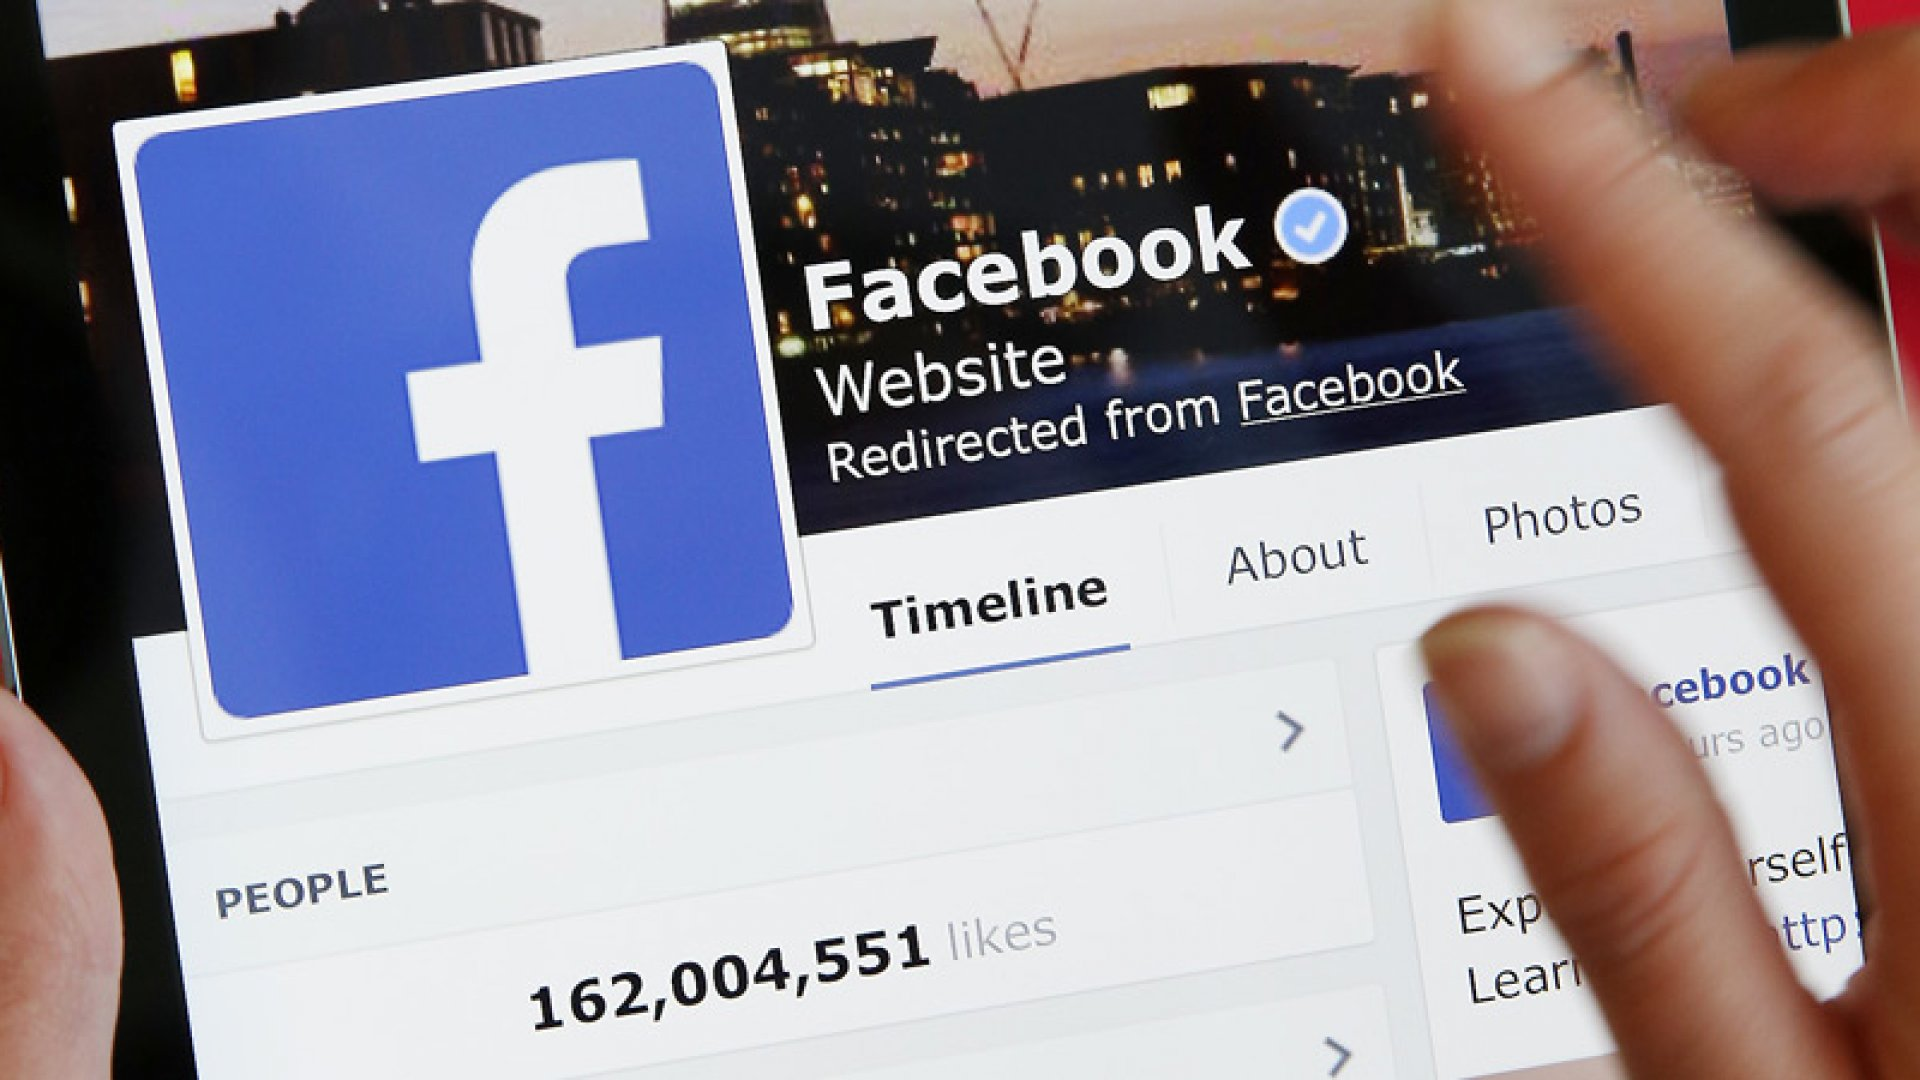 A Facebook Experiment May Have Affected Voter Turnout in the 2012 Election